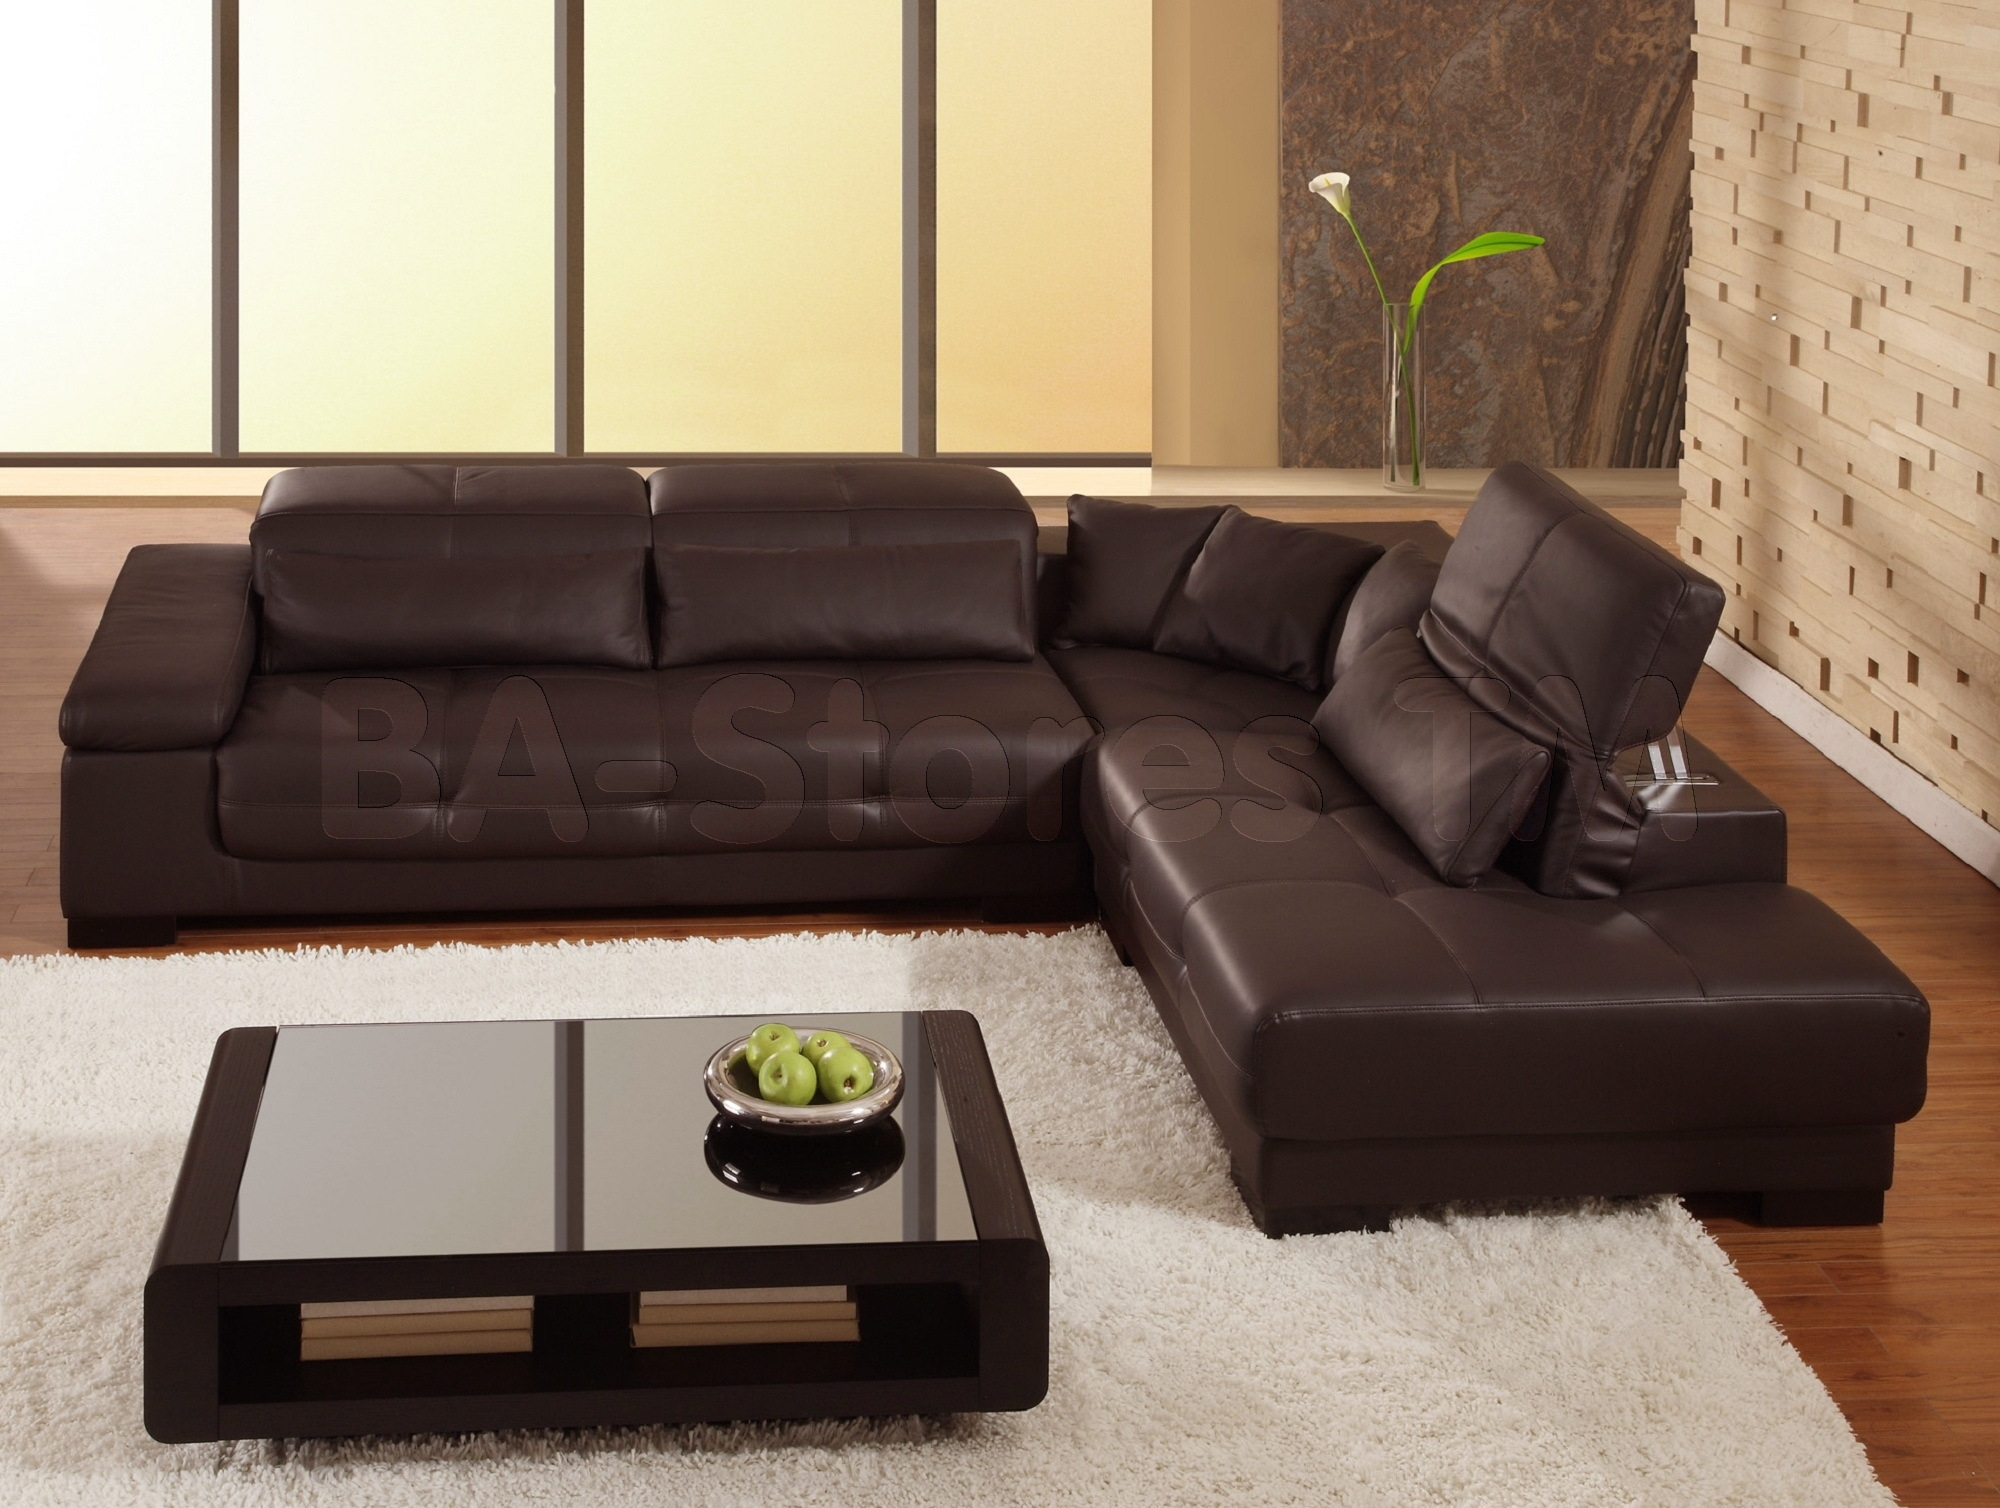 Leather Sectional Sofas Raleigh Nc | Catosfera For Raleigh Sectional Sofas (View 3 of 10)